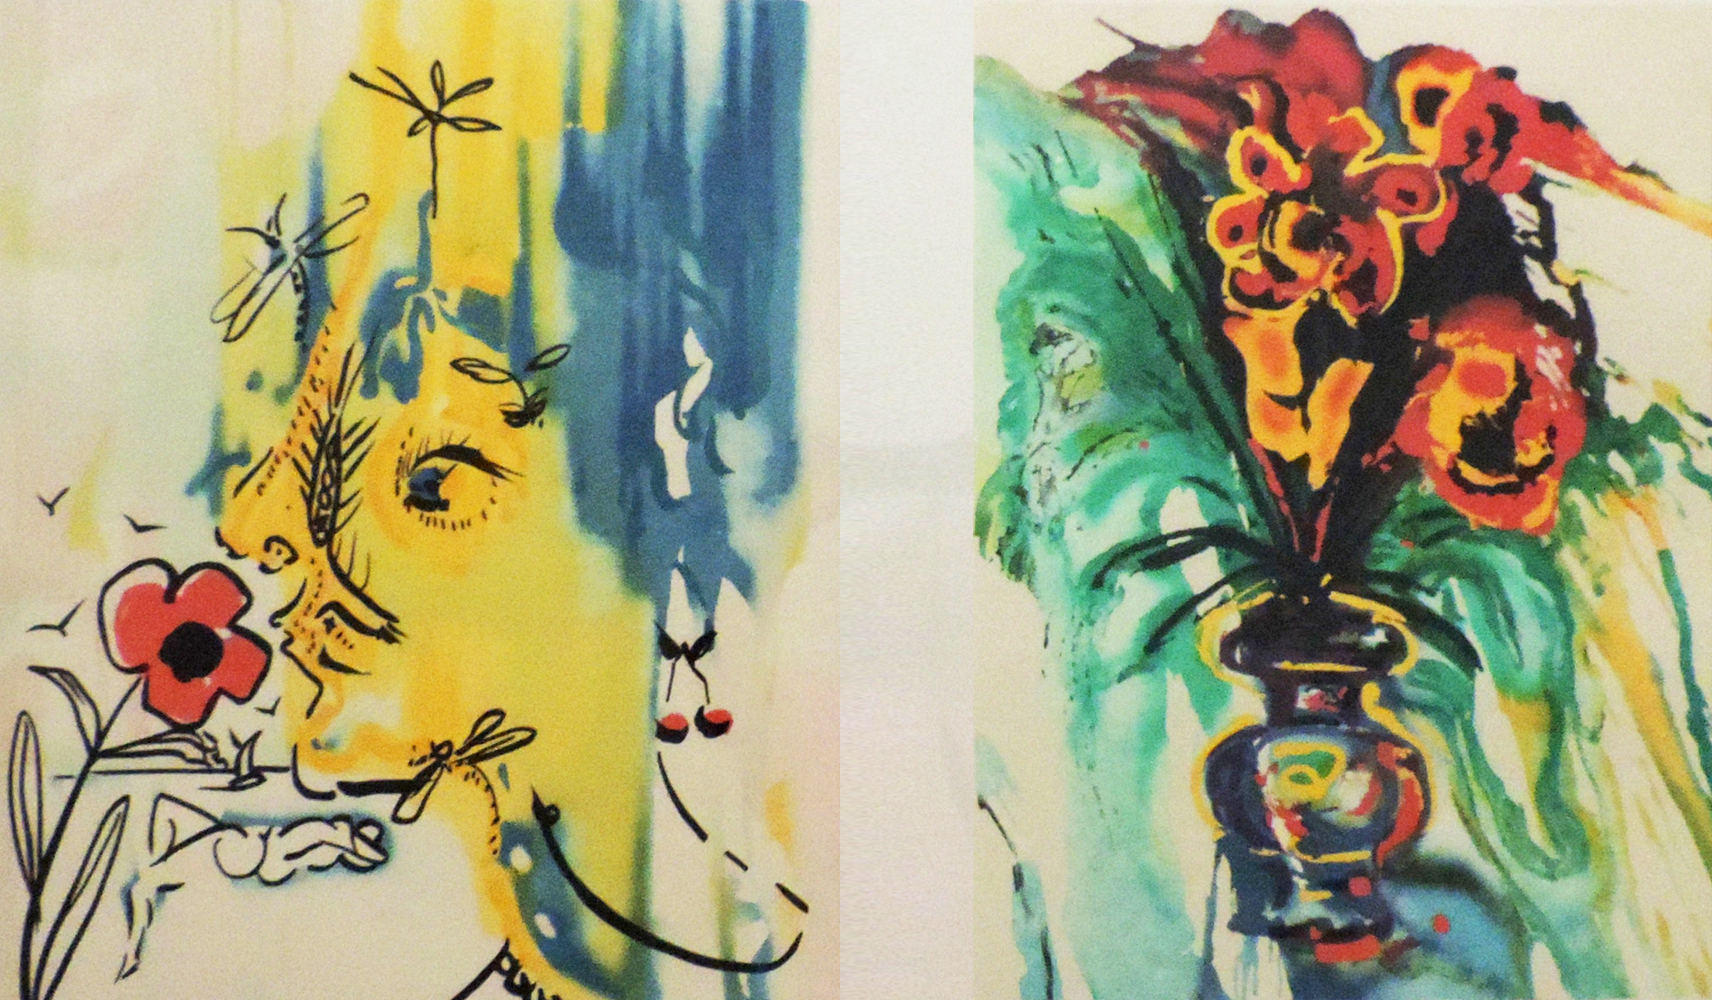 Fleurs Surrealistes of Gala's Bouquet And The Vanishing Face 1980